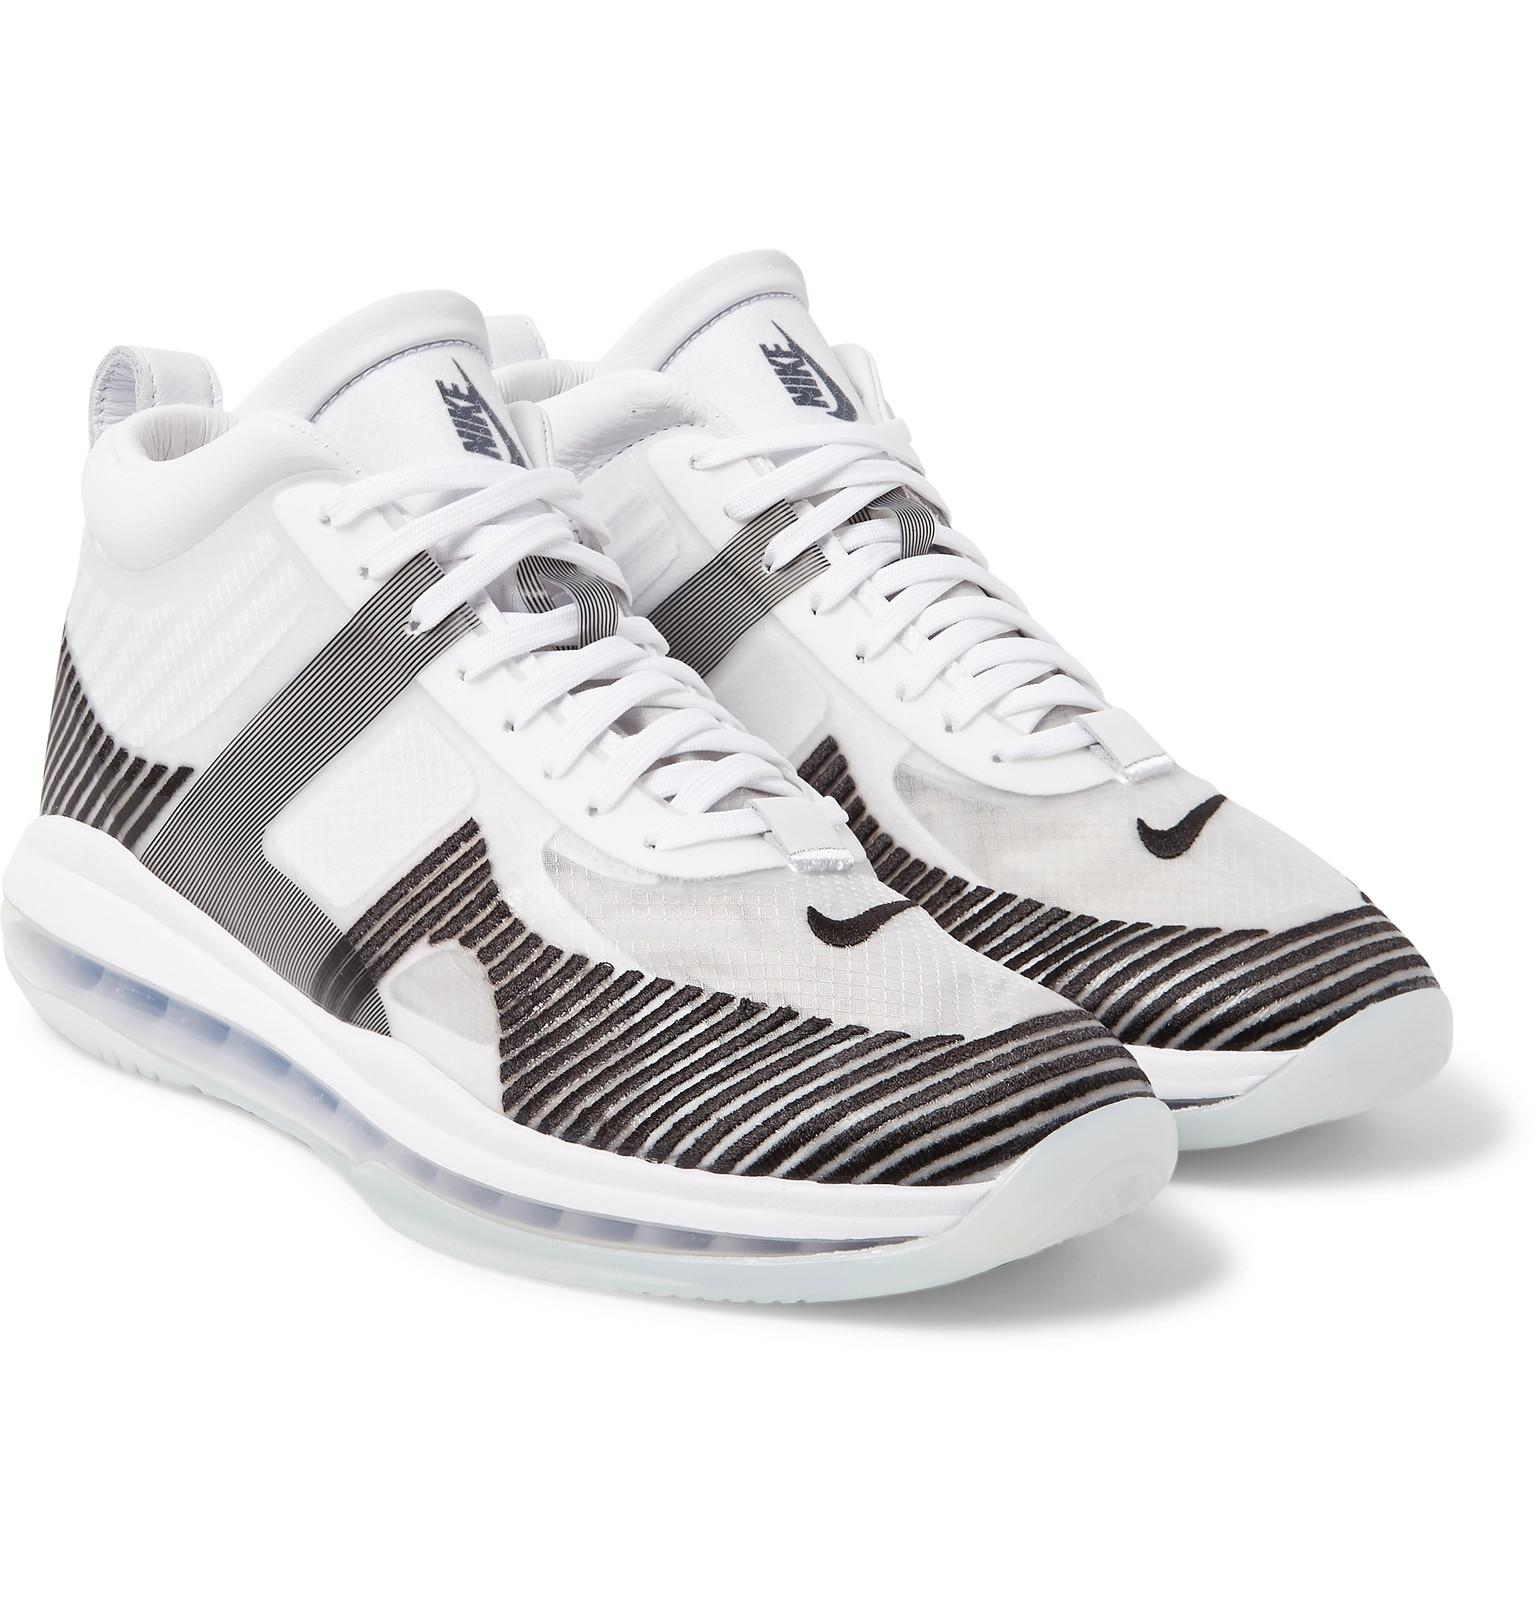 4a6804bd183 ... promo code for nike. mens white lebron james x john elliott icon qs high  top